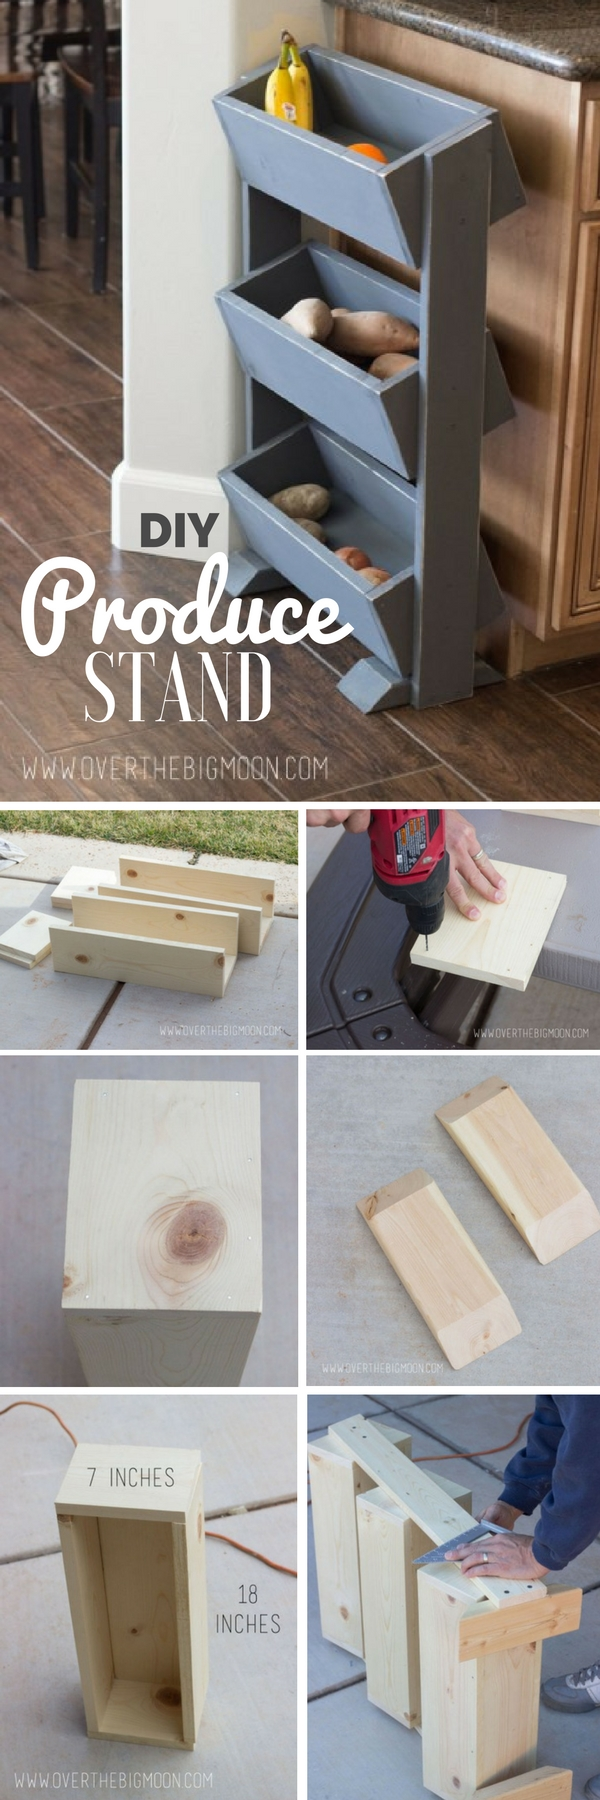 Check out the tutorial: #DIY Produce Stand